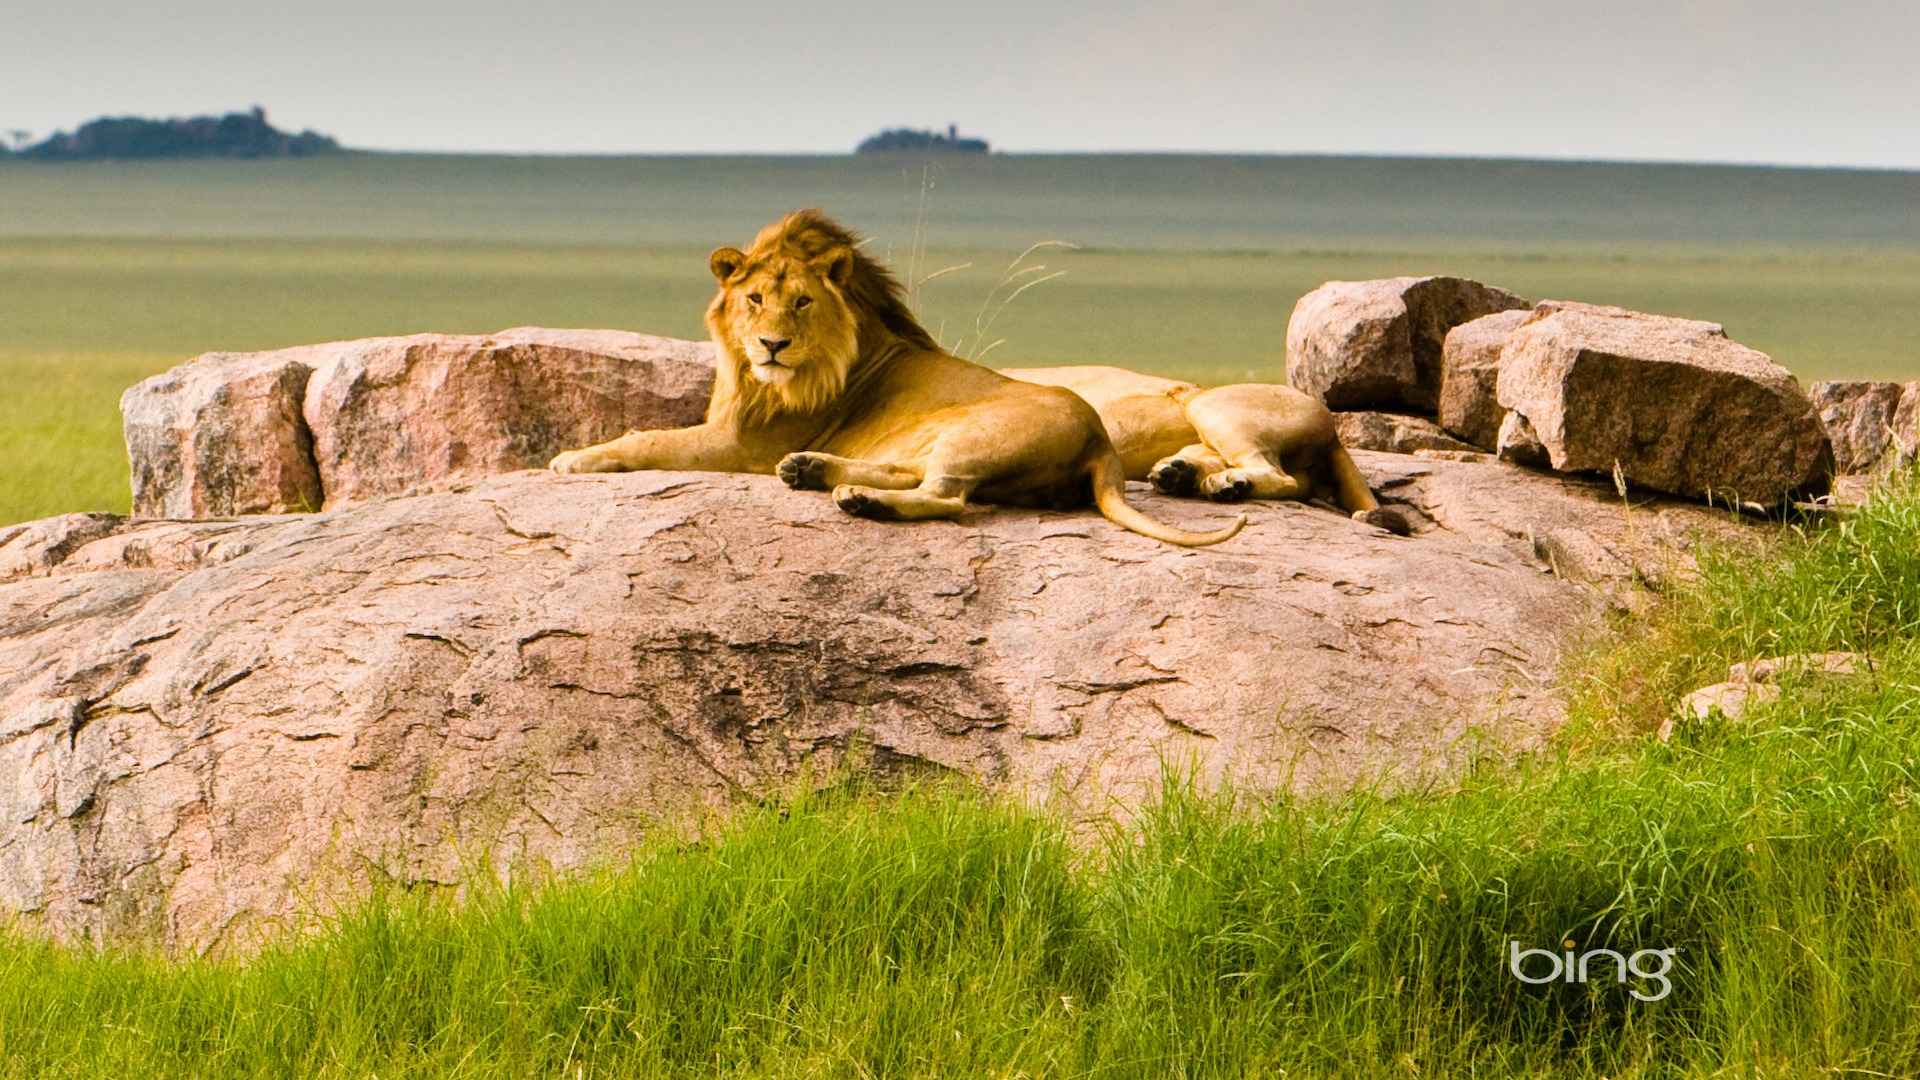 Serengeti Tanzania  city photo : Tanzania Serengeti National Park Lions Bing Wallpaper 1920x1080 ...